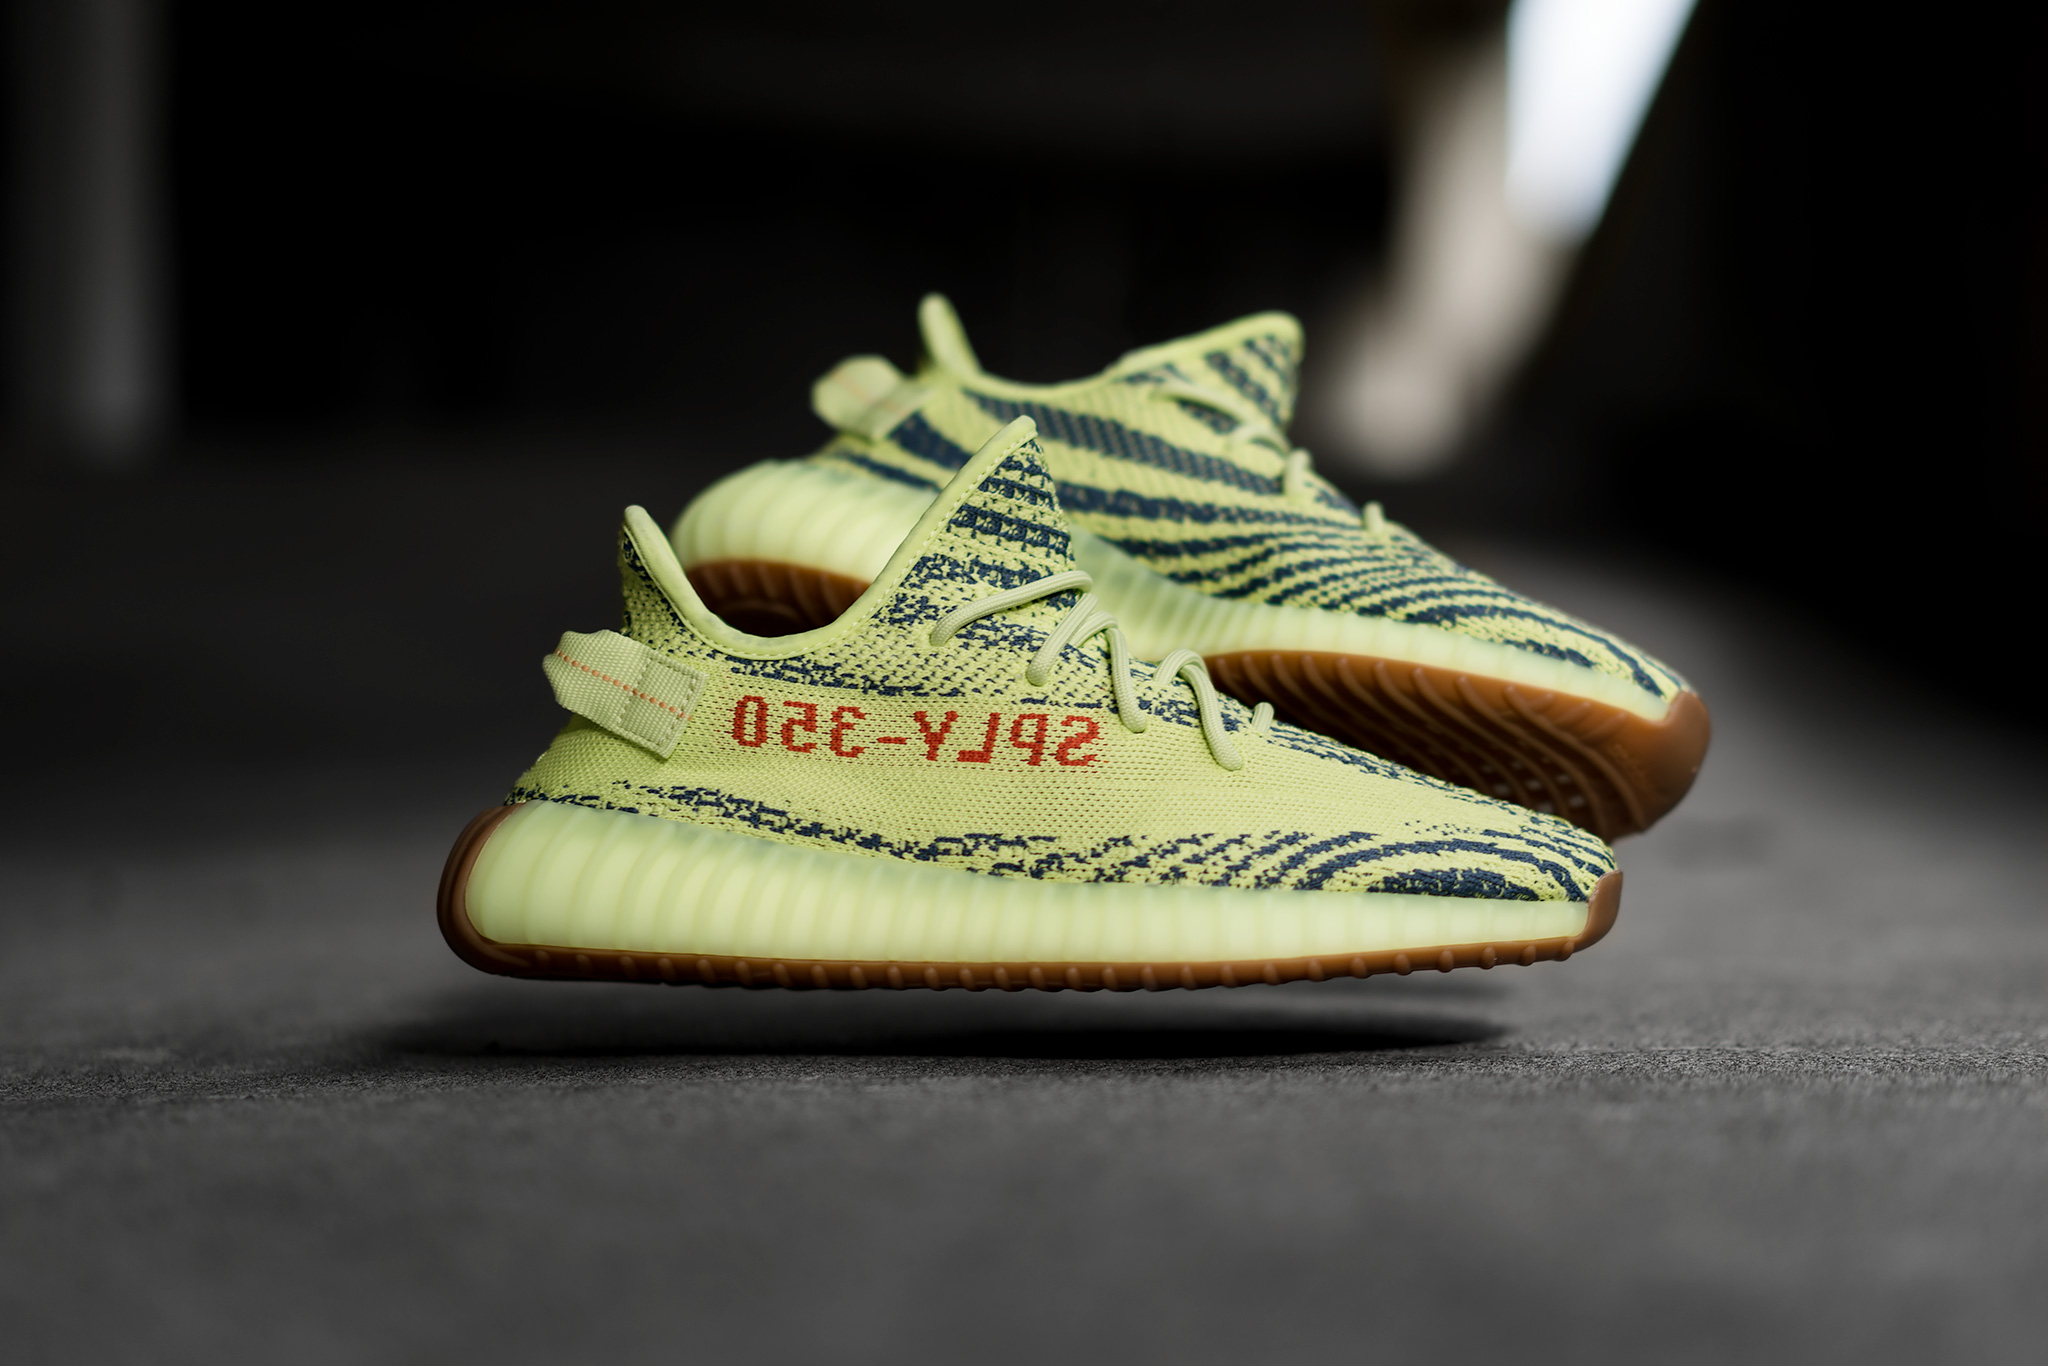 The latest footwear offerings from Kanye West s partnership with adidas is  set to release at HAVEN on November 18th. Featuring the 3 stripes  proprietary ... 1d4a6bbf4